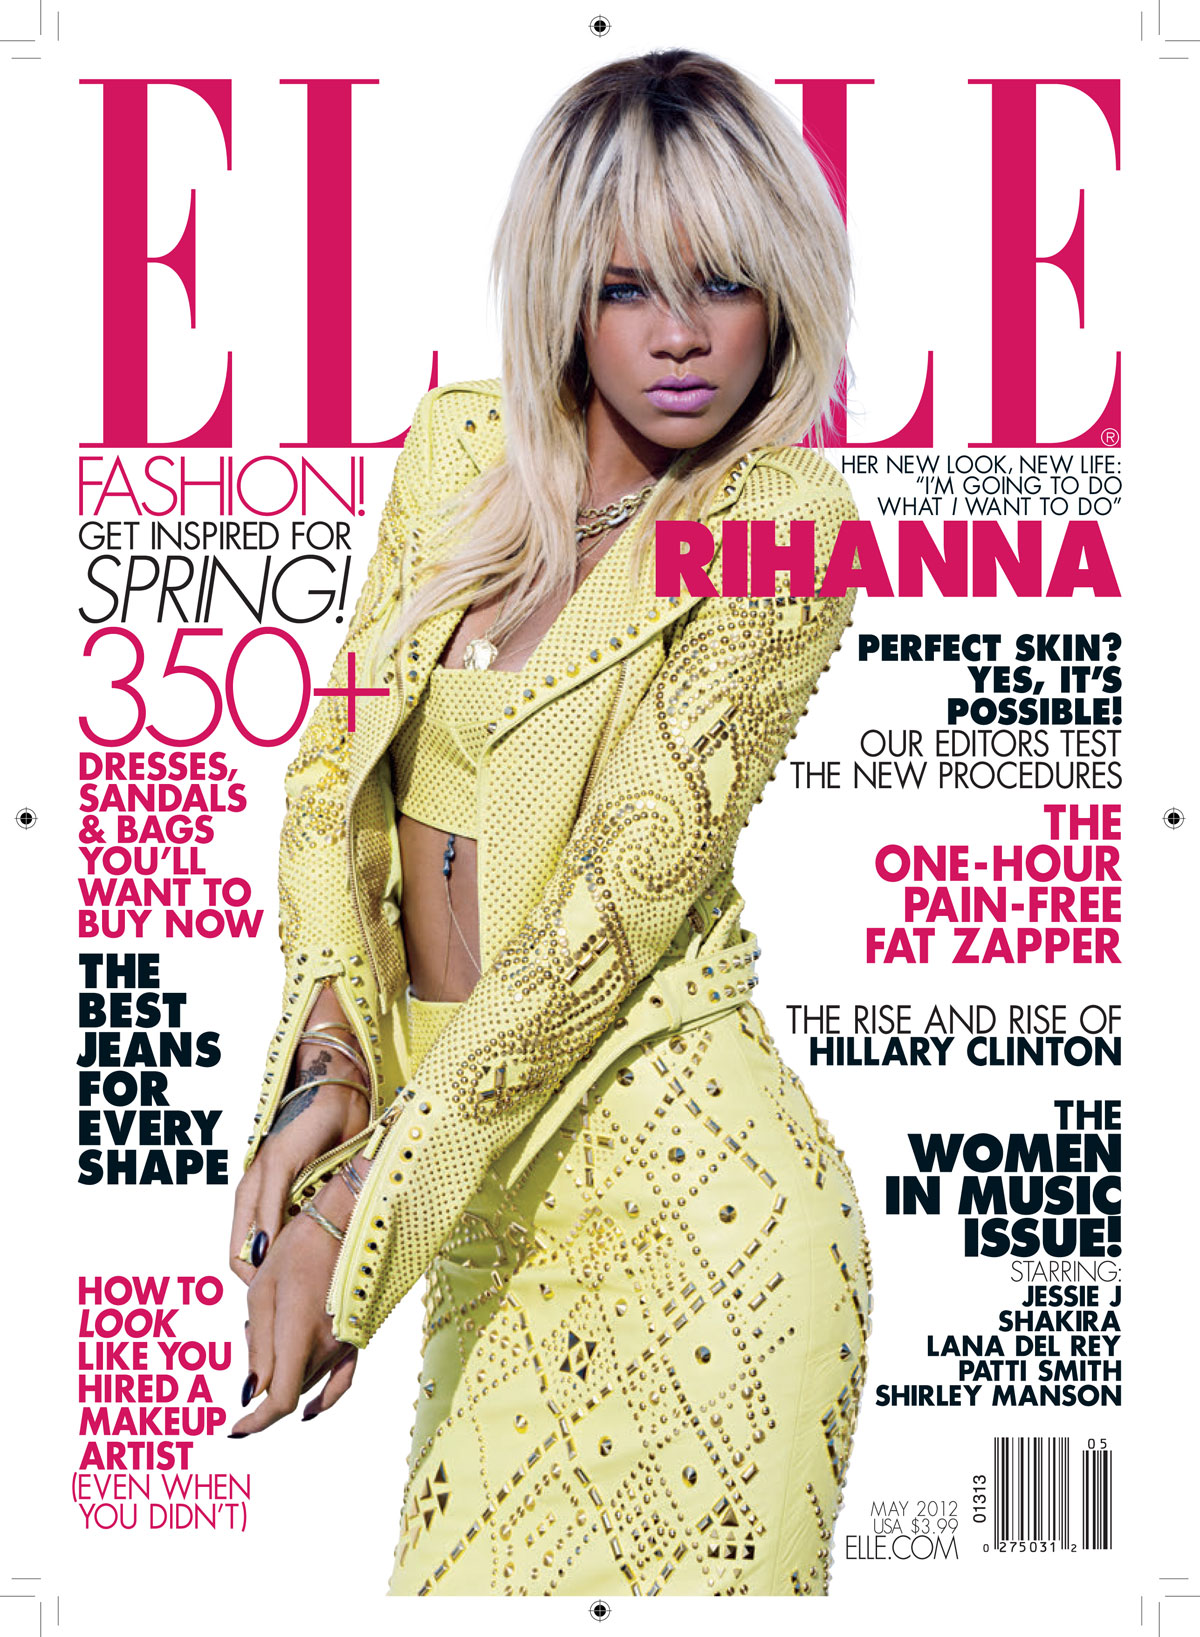 Elle Magazine France February March: RIHANNA In Elle Magazine, May 2012 Issue